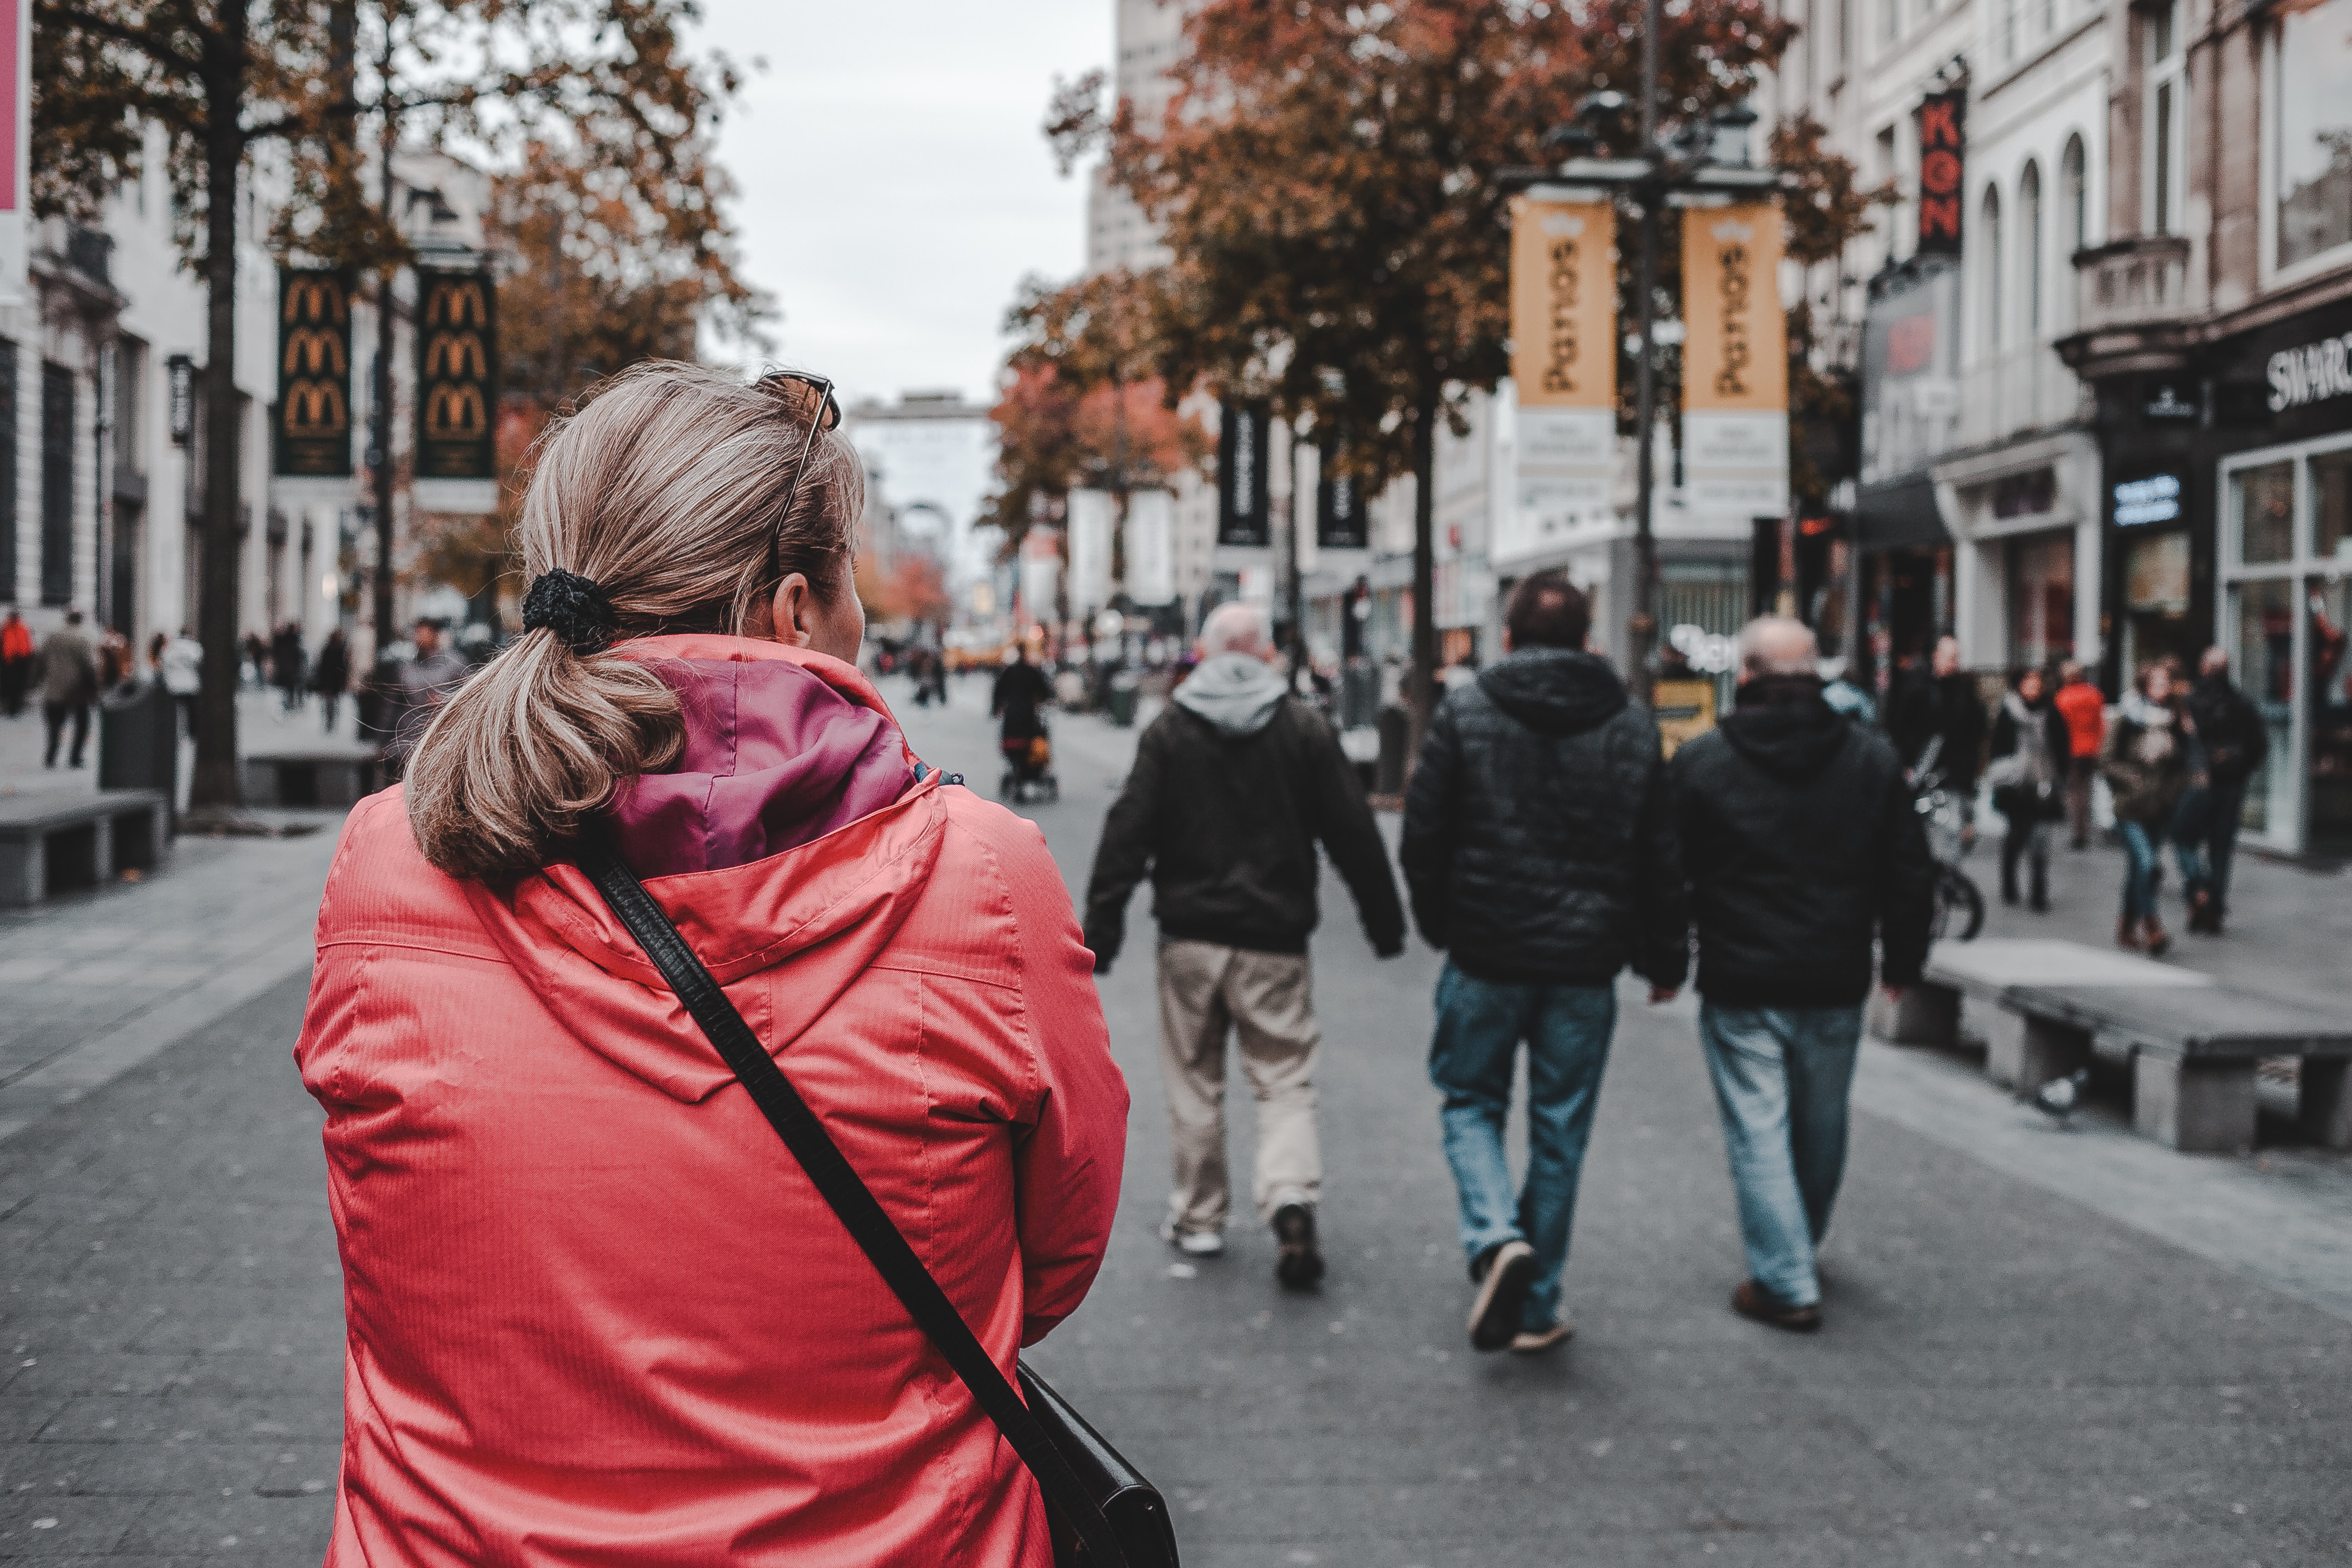 woman walking while looking right side